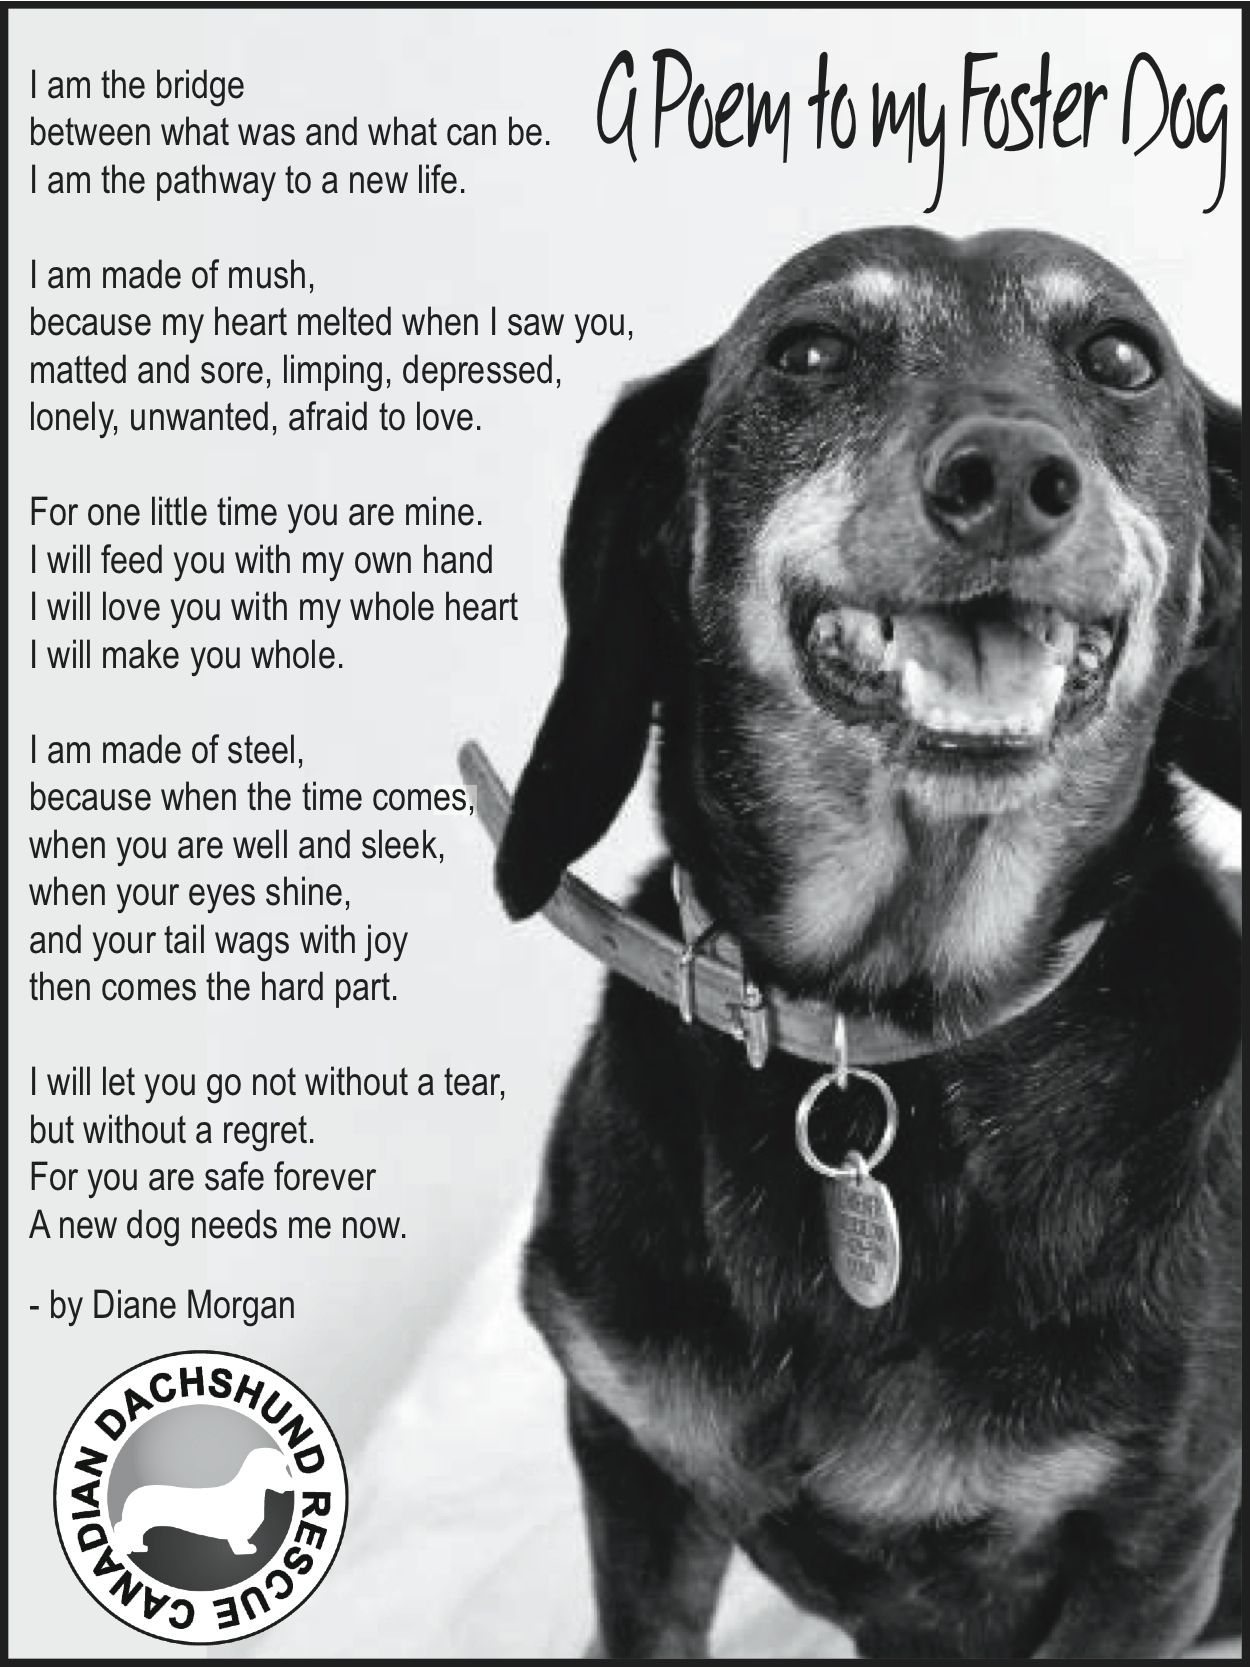 A very touching poem written from the perspective of a